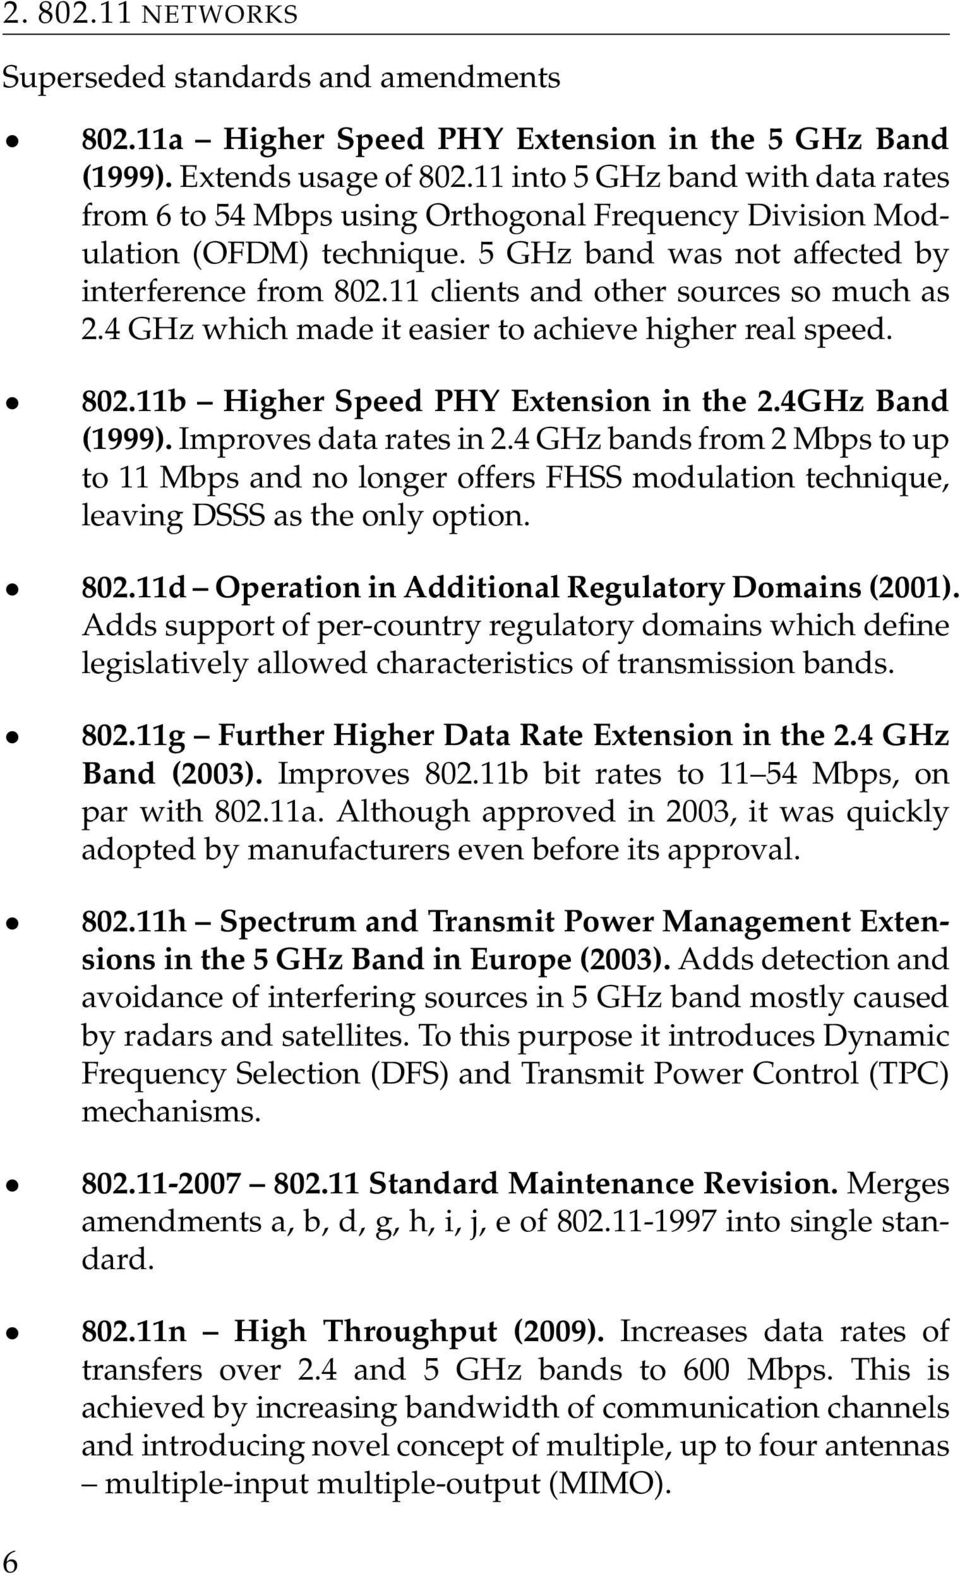 11 clients and other sources so much as 2.4 GHz which made it easier to achieve higher real speed. 802.11b Higher Speed PHY Extension in the 2.4GHz Band (1999). Improves data rates in 2.